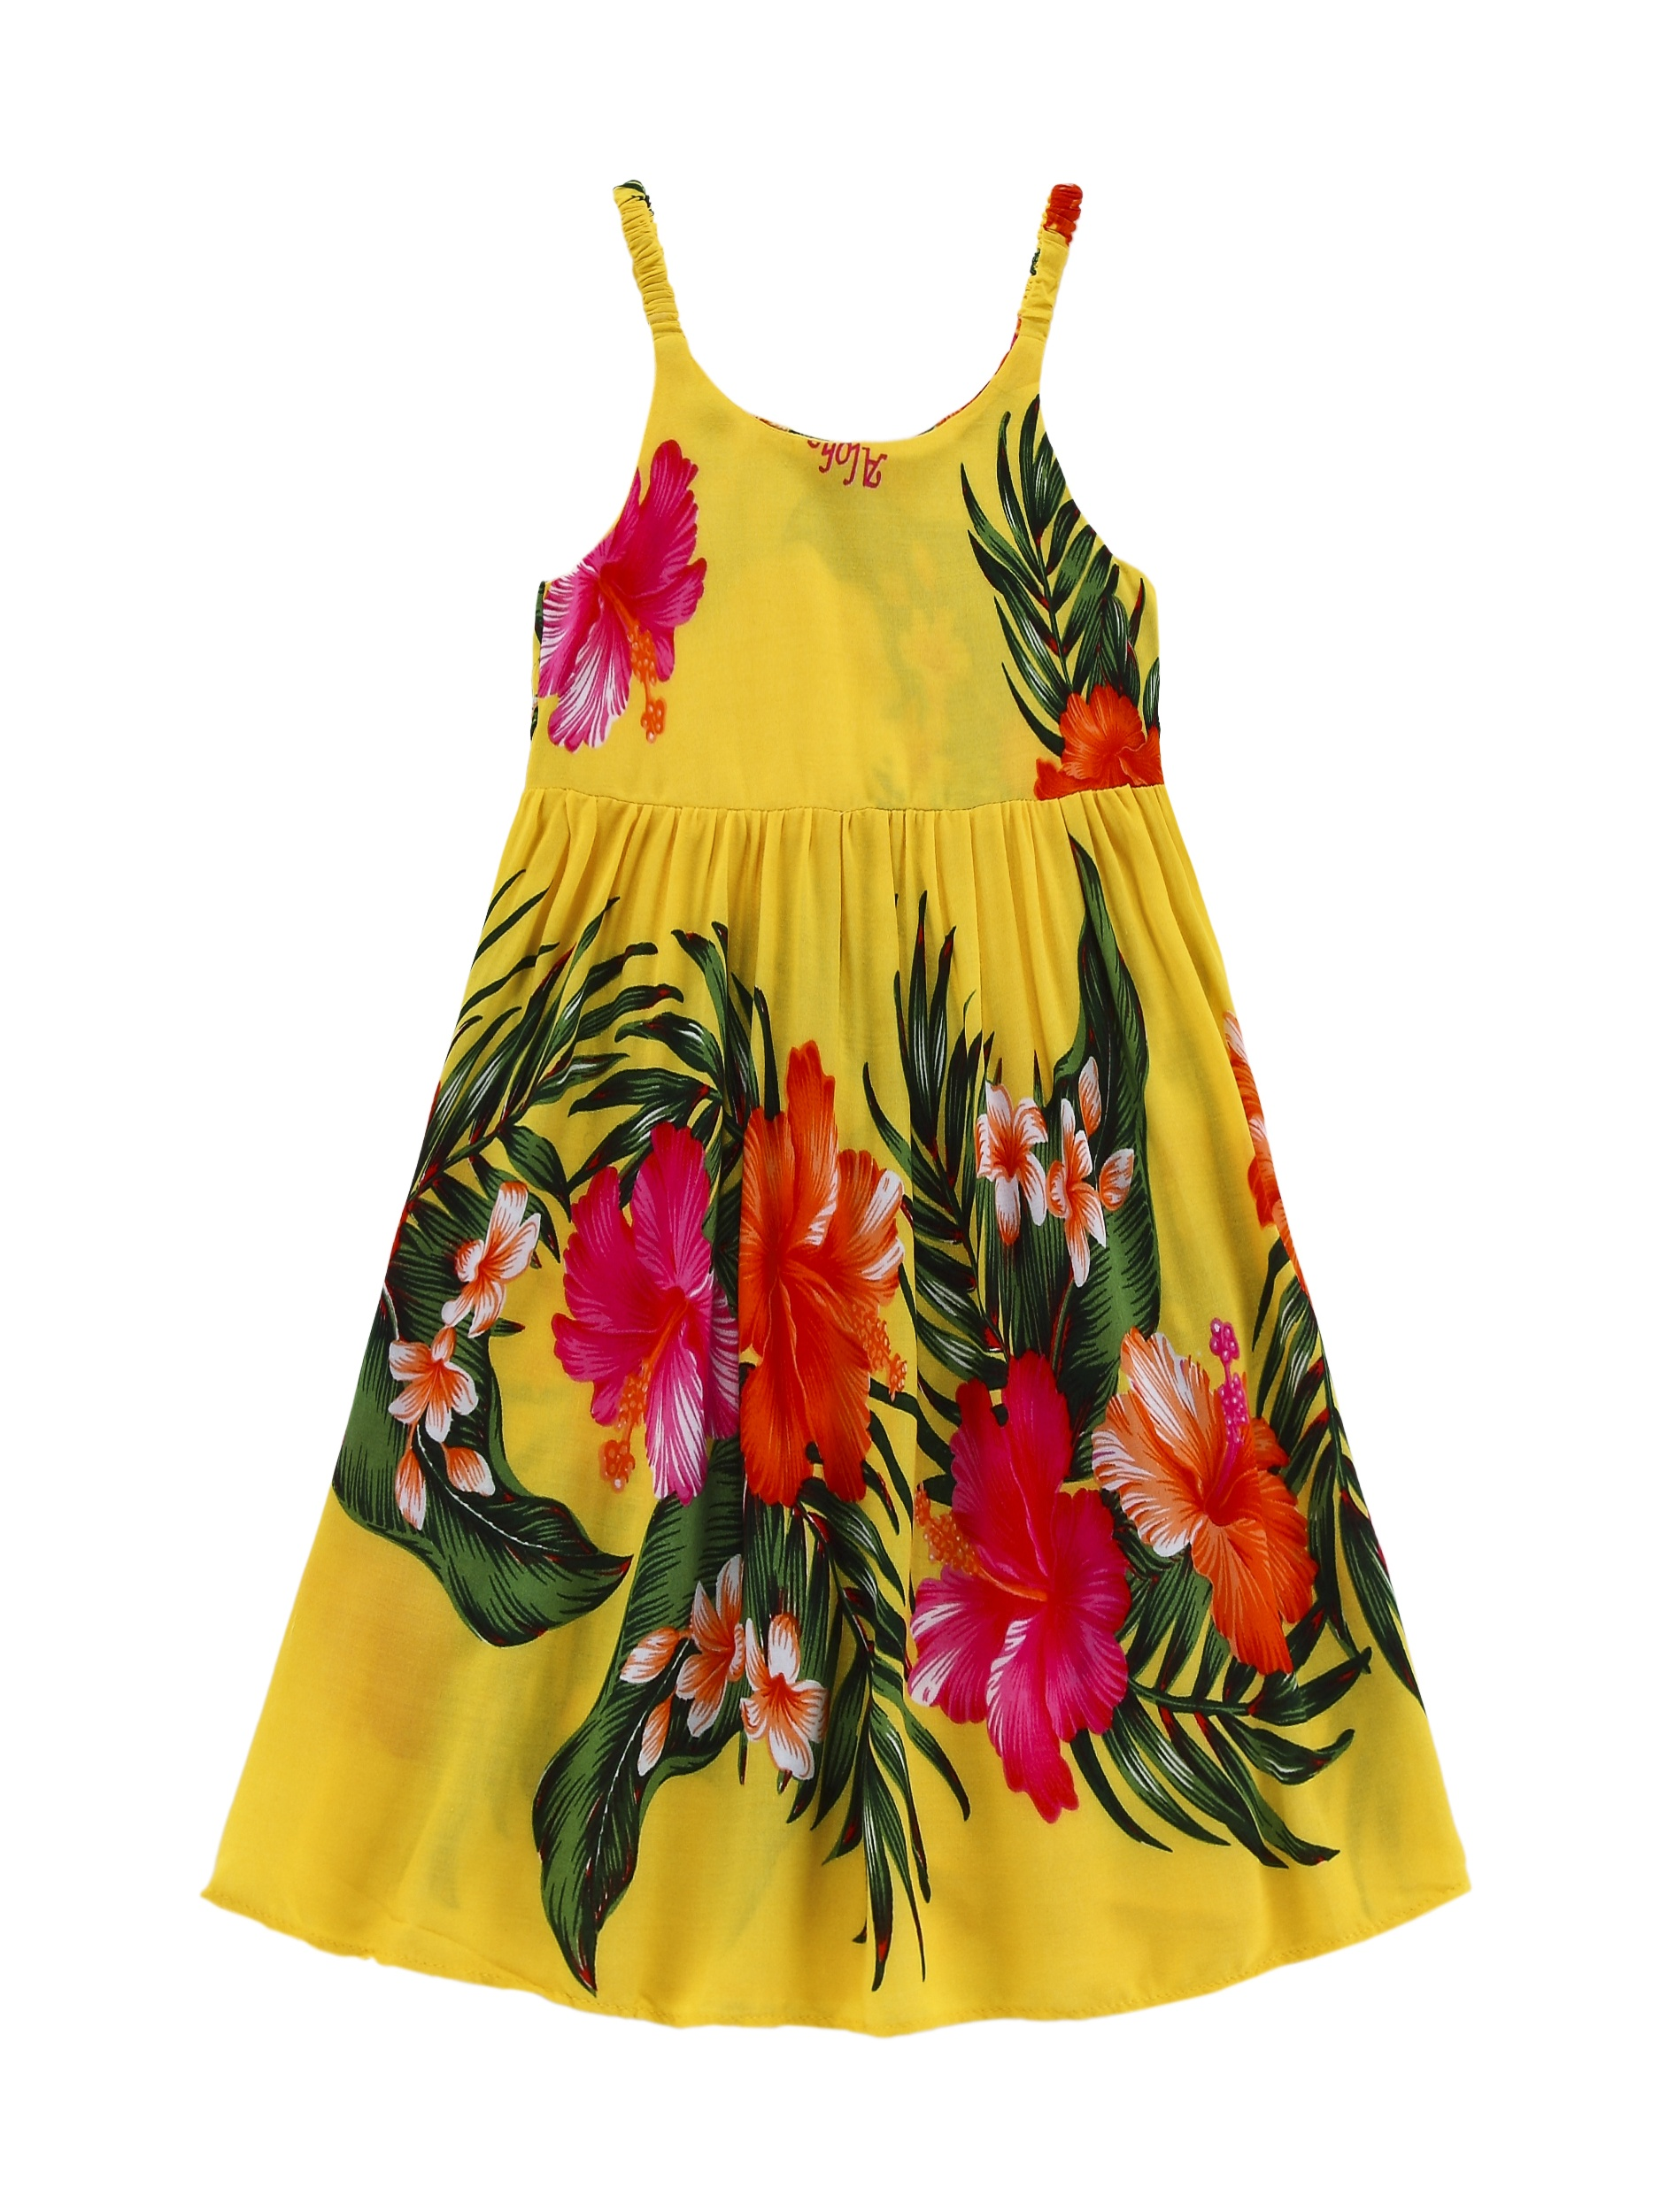 Girl Luau Dress Hawaiian Dress Elastic Strap Dress in Yellow with Red Floral